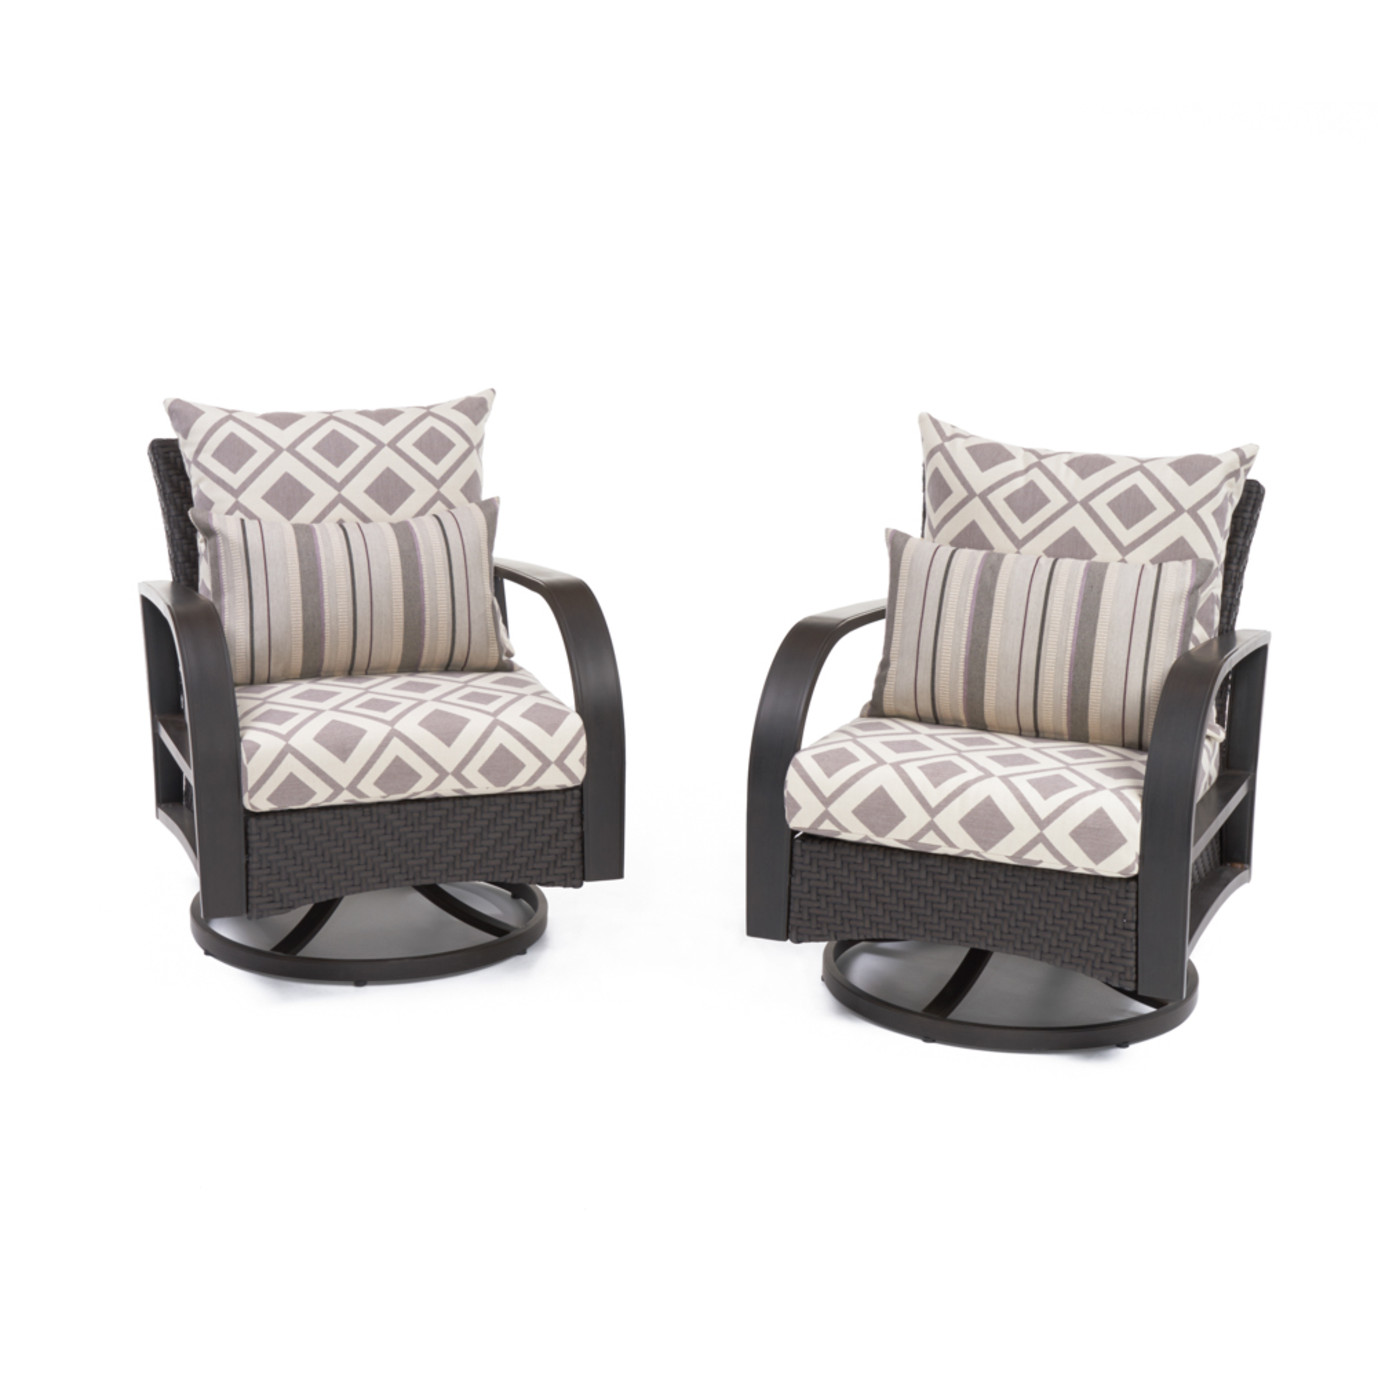 Barcelo™ Motion Club Chairs - Wisteria Lavender